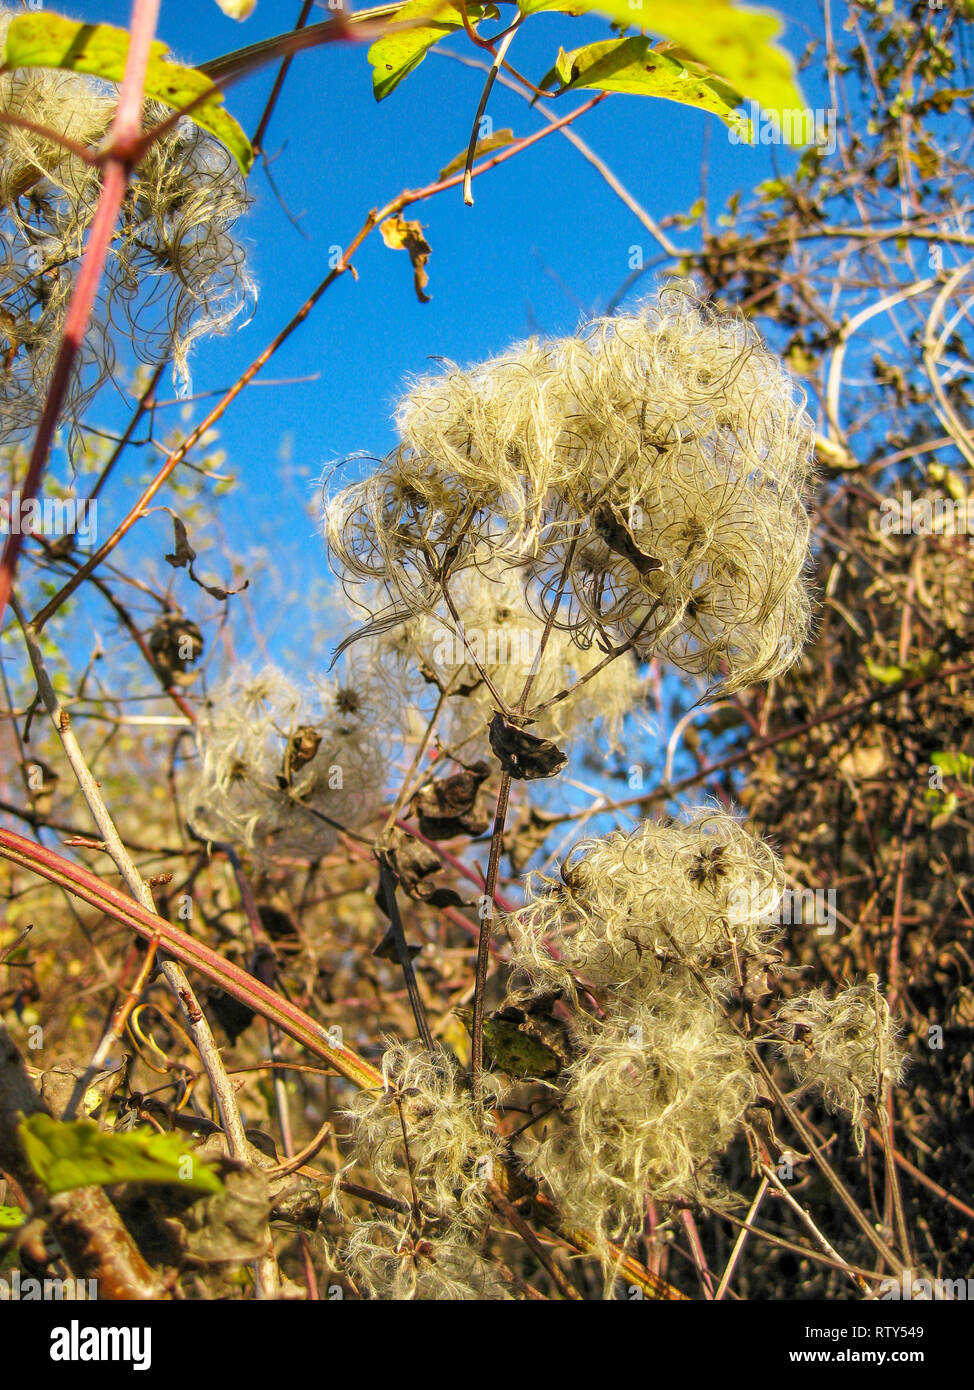 Late October Clematis vitalba, Old man's beard or Traveller's joy fruits against a clear blue sky - Stock Image